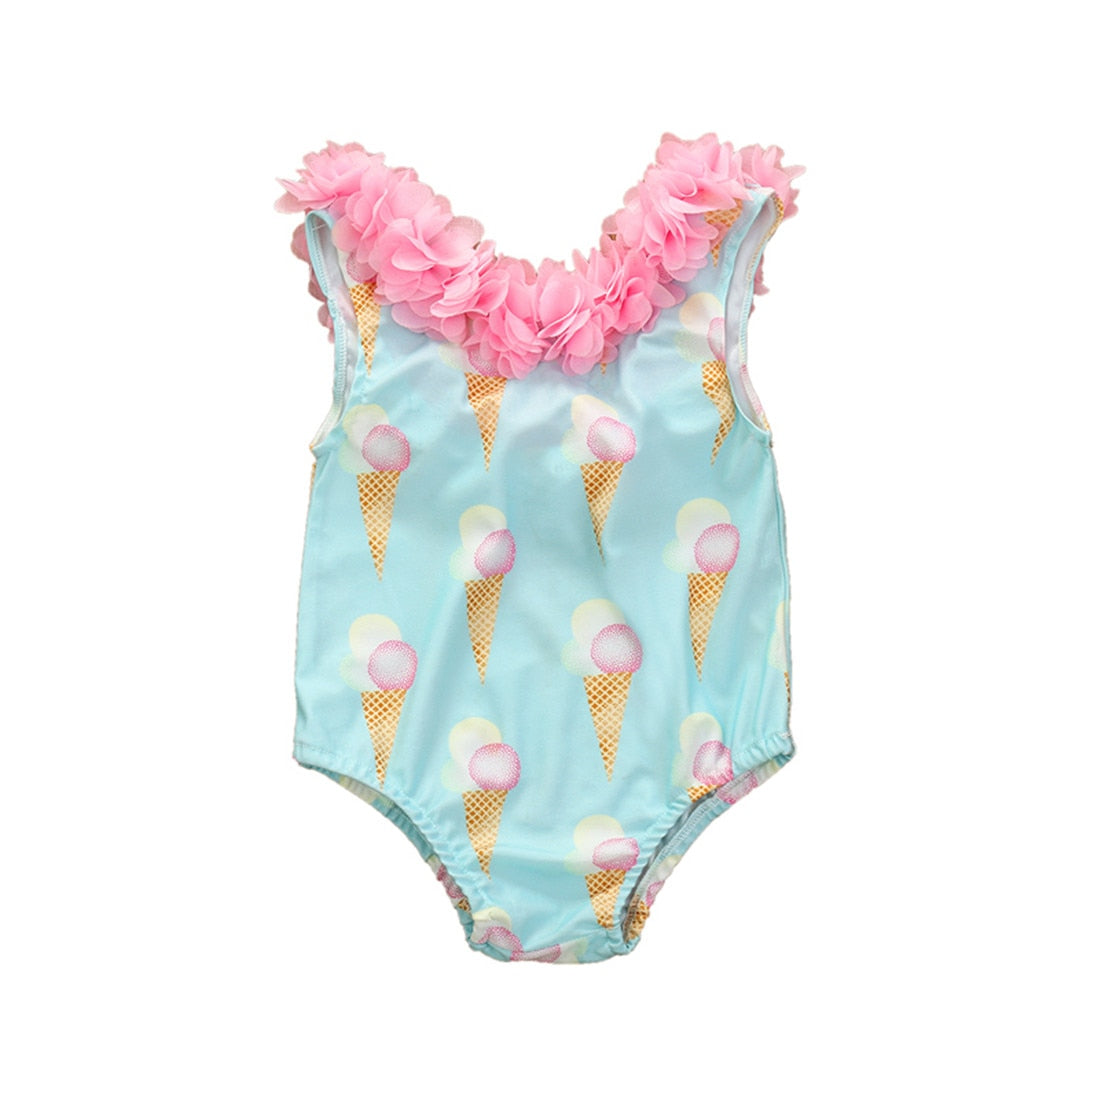 1-5Y Infant Kids Girls One Piece Bikini Swimwear Ruffles Floral Ice Cream Print Sleeveless Beachwear Clothes